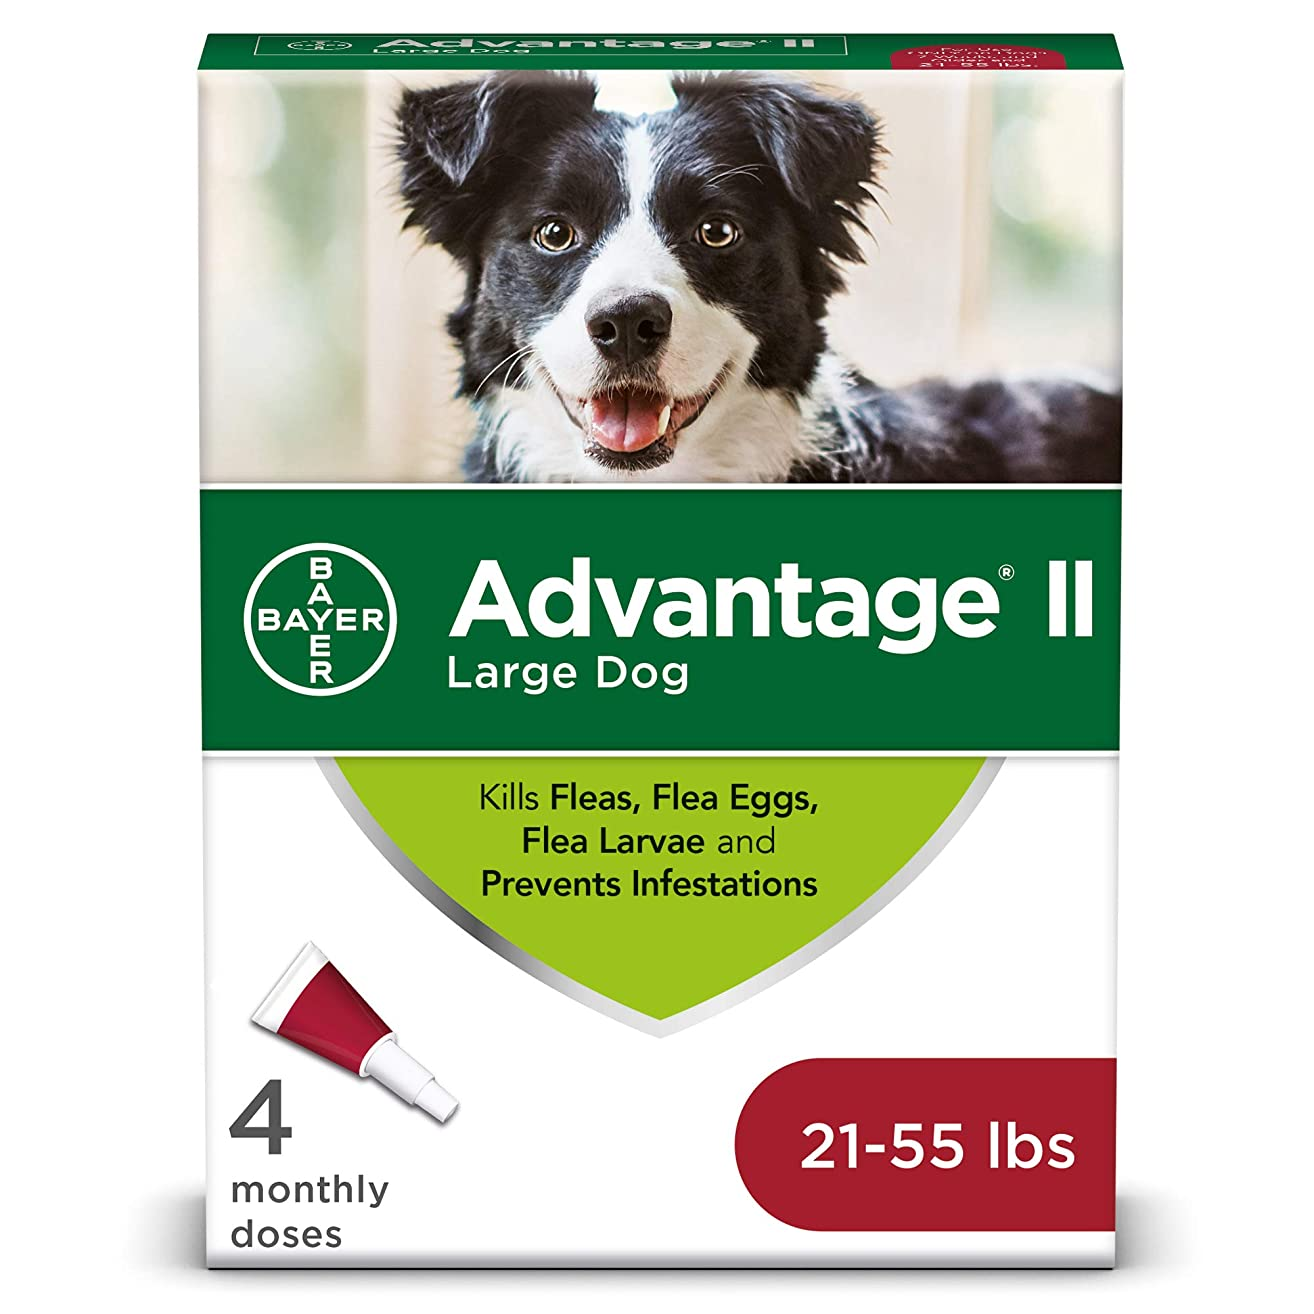 Bayer Advantage II Topical Flea Treatment for Large Dogs, 21 - 55 lbs